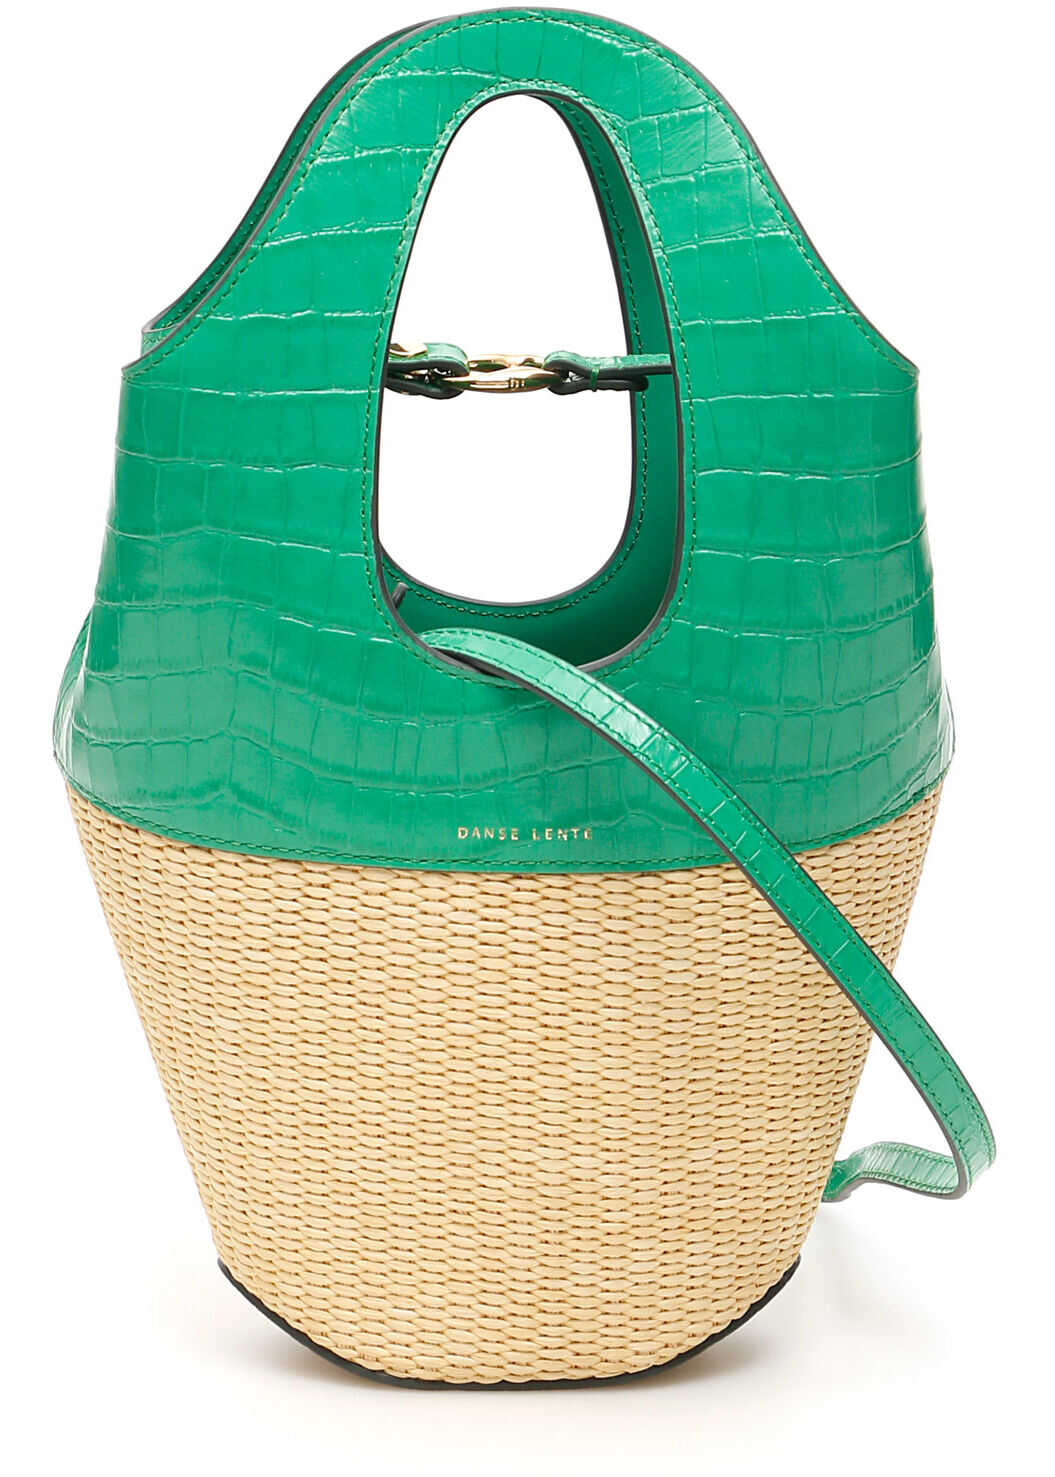 Danse Lente Small Tote Bag EMERALD RICE CROC